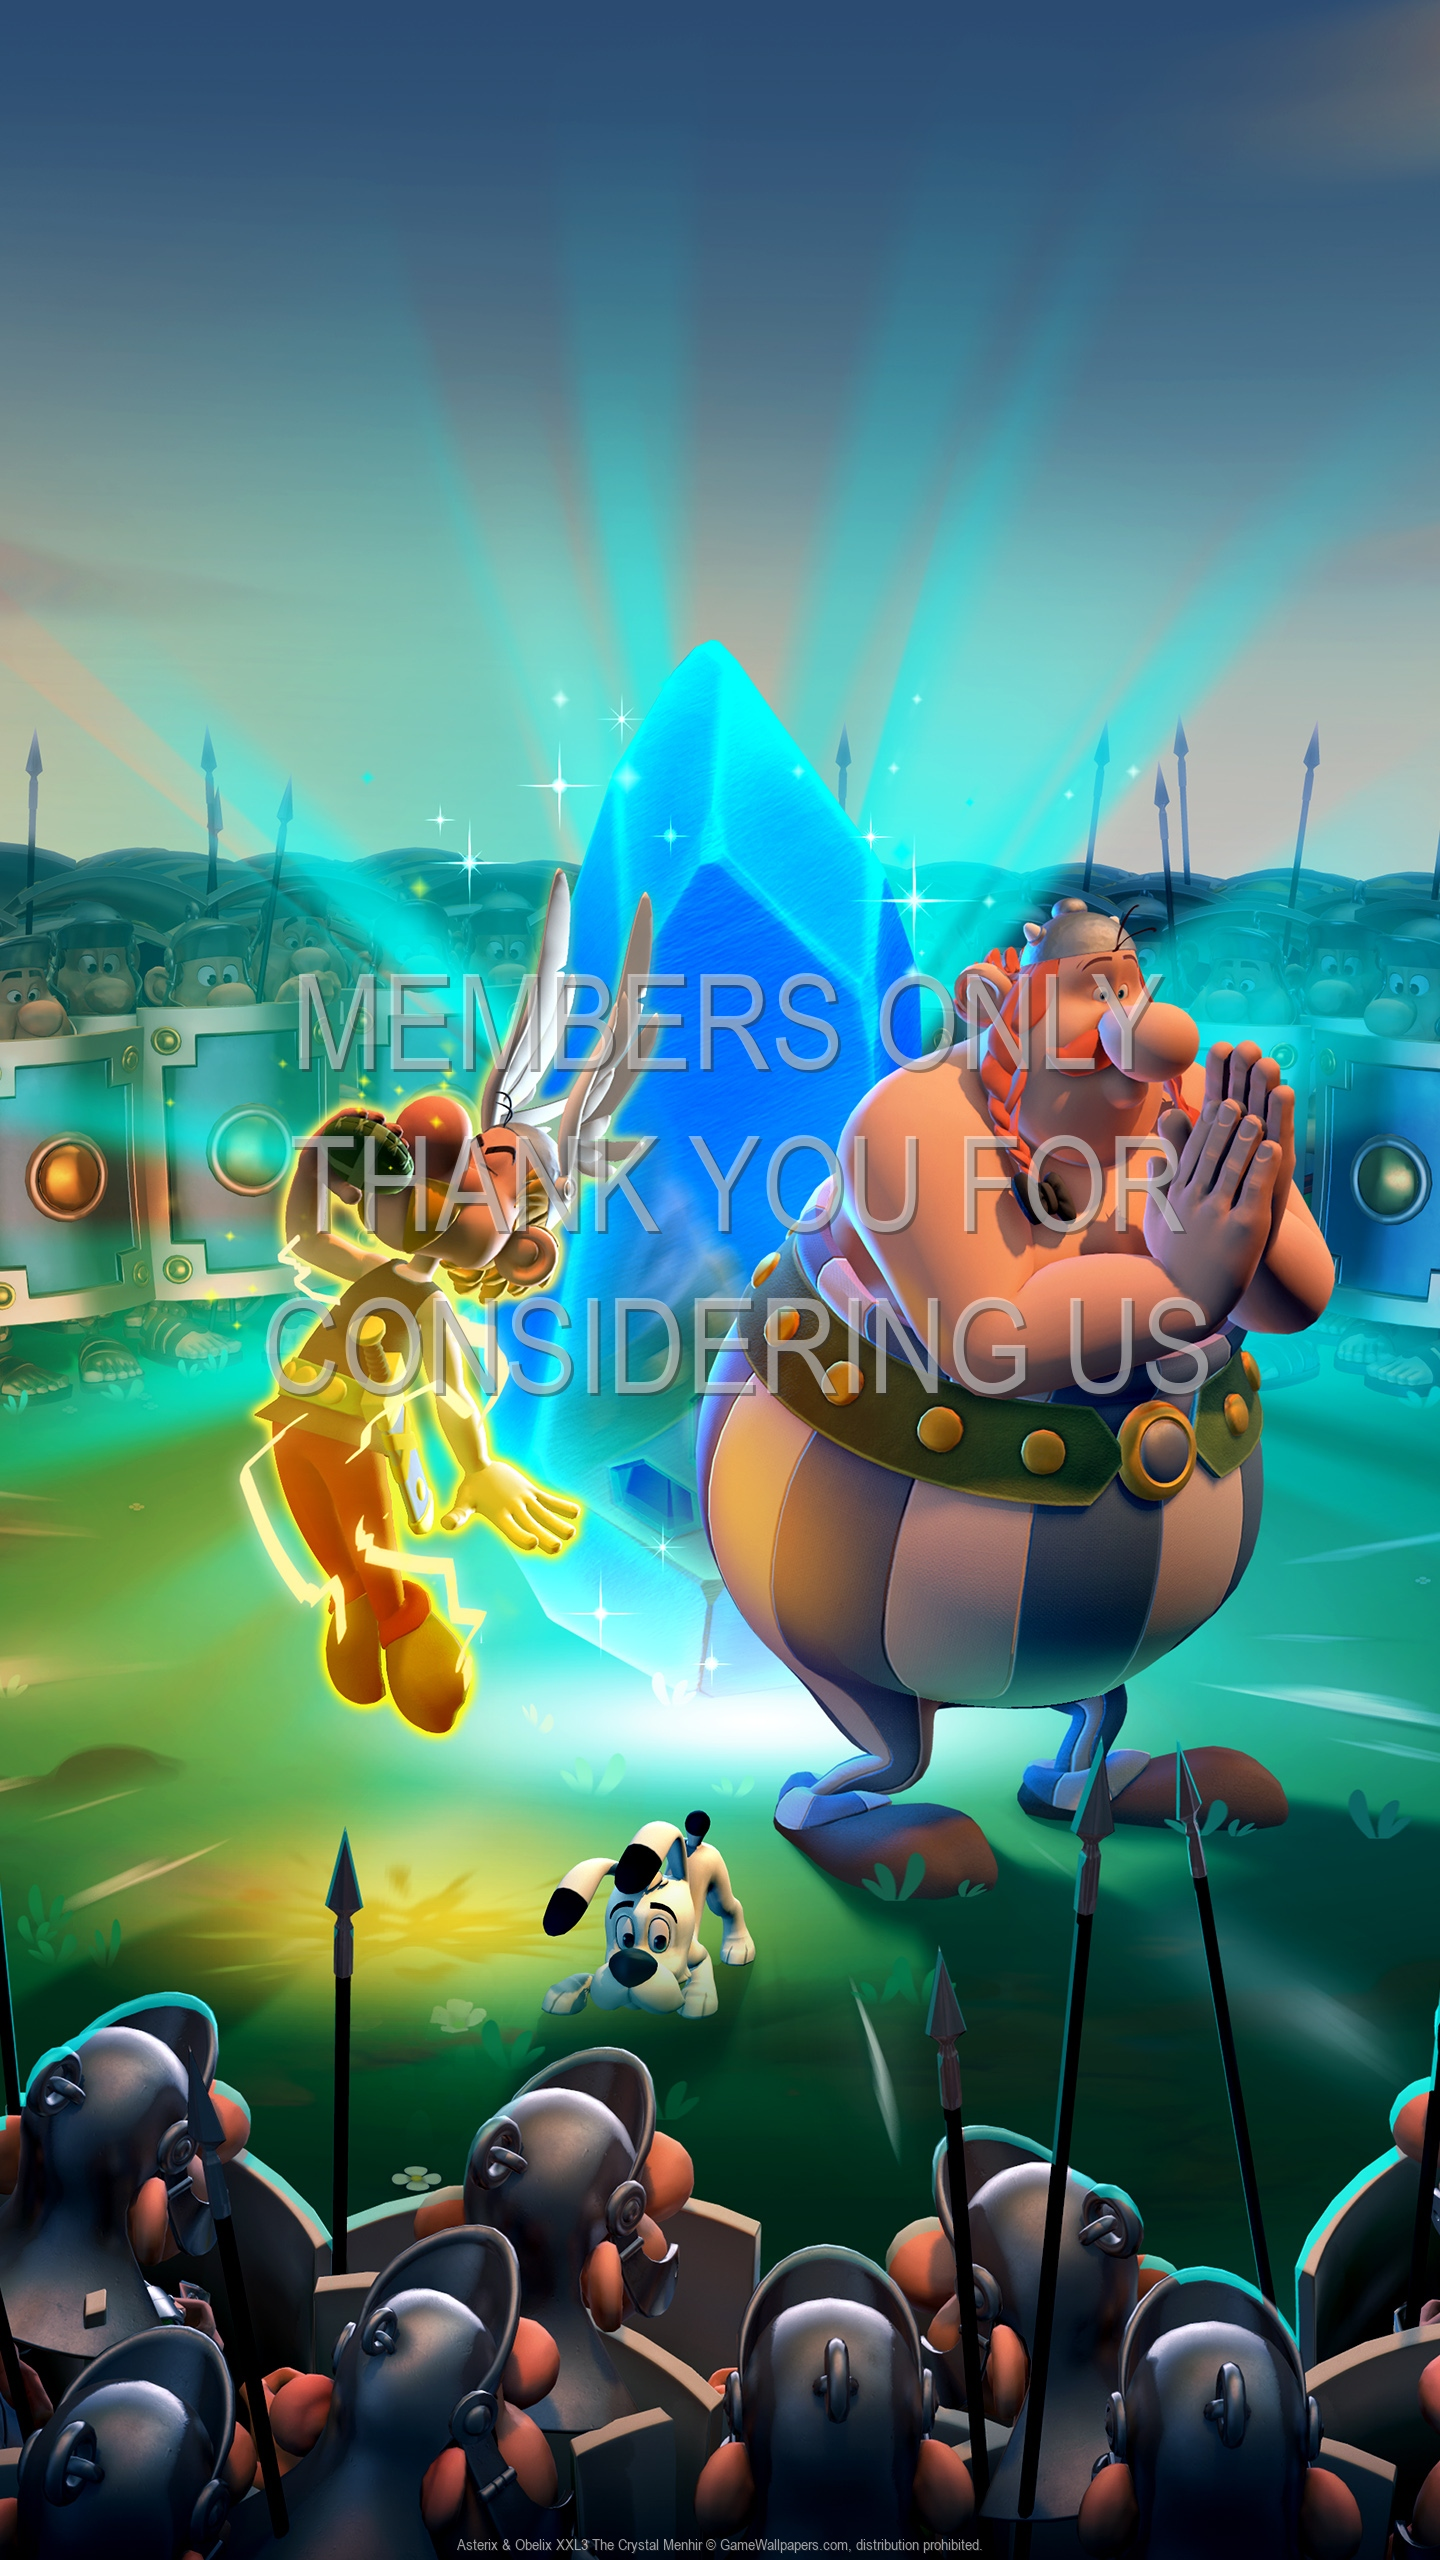 Asterix & Obelix XXL3: The Crystal Menhir 1920x1080 Mobile wallpaper or background 01